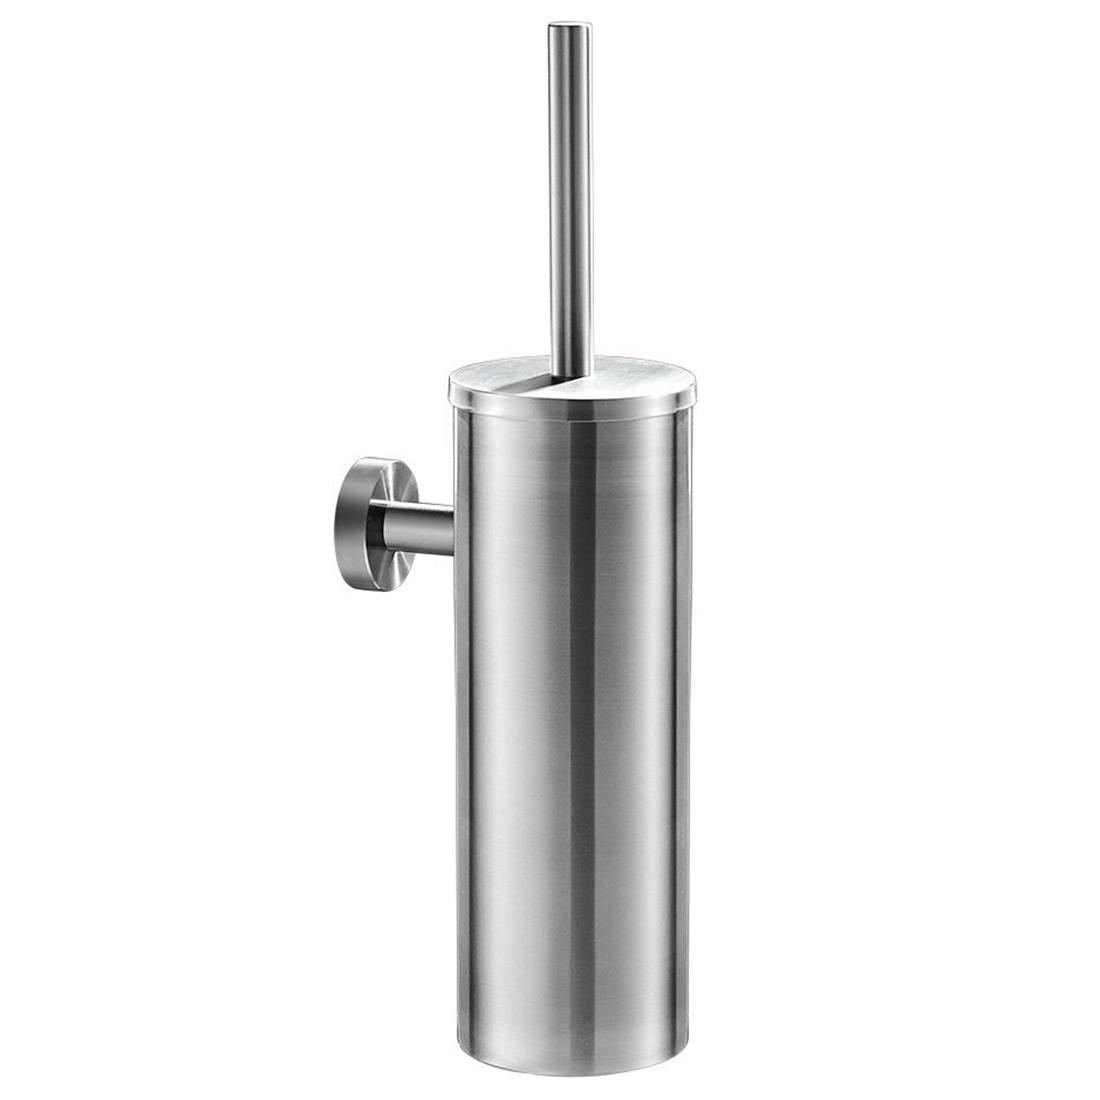 Toilet Brush for Cleaning Black Color with Stainless Steel Wall Mounted Brush Holder Chromed FinishToilet Brush for Cleaning Black Color with Stainless Steel Wall Mounted Brush Holder Chromed Finish